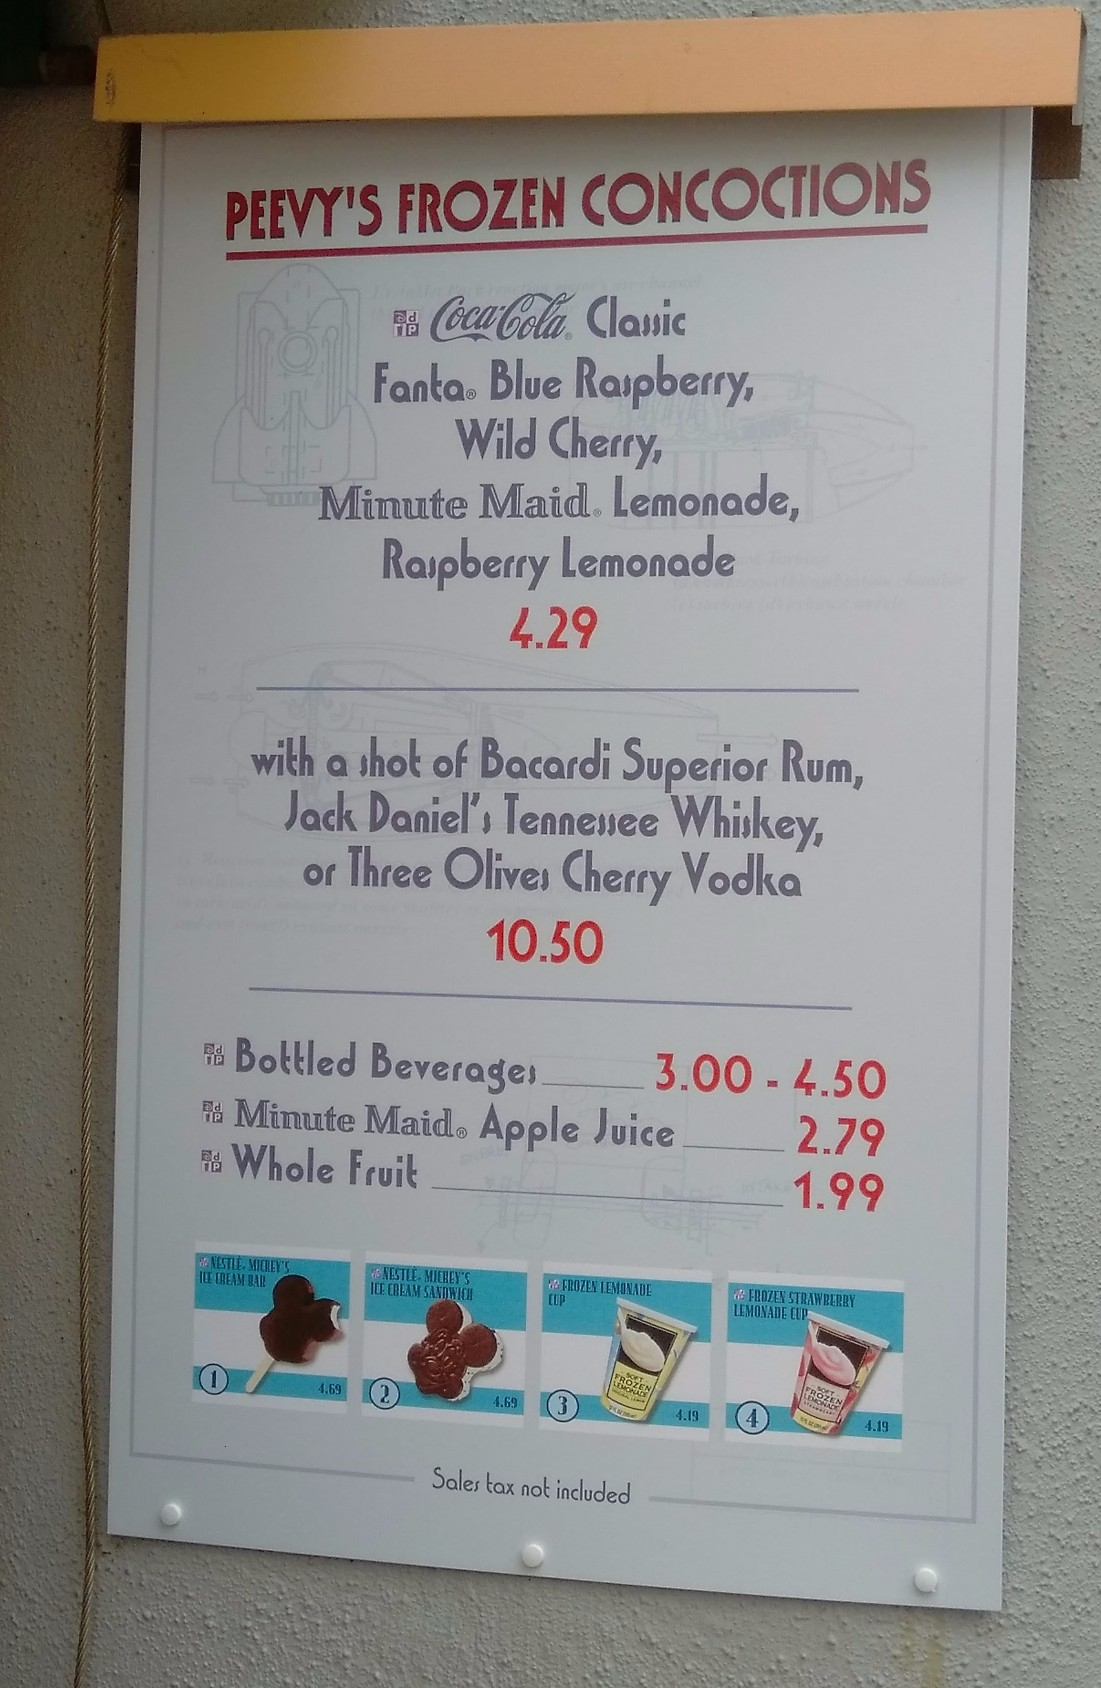 hollywood-studios-best-use-of-snack-credits-dining-plan (5)